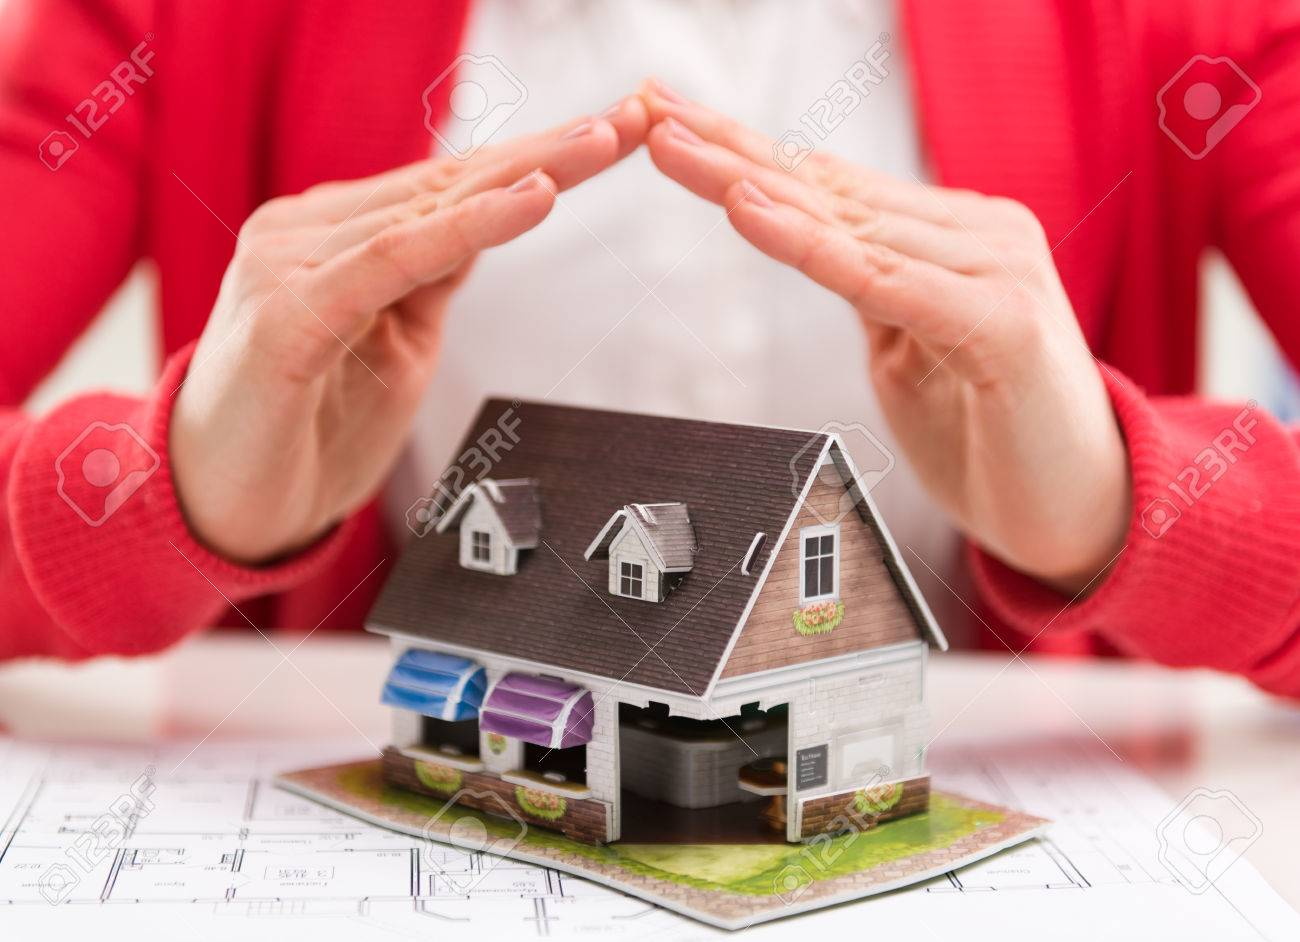 Close-up of mortgage agent hands with family house model in real estate agency. Concept of real estate loan agreement. Shallow depth of field. - 39619497